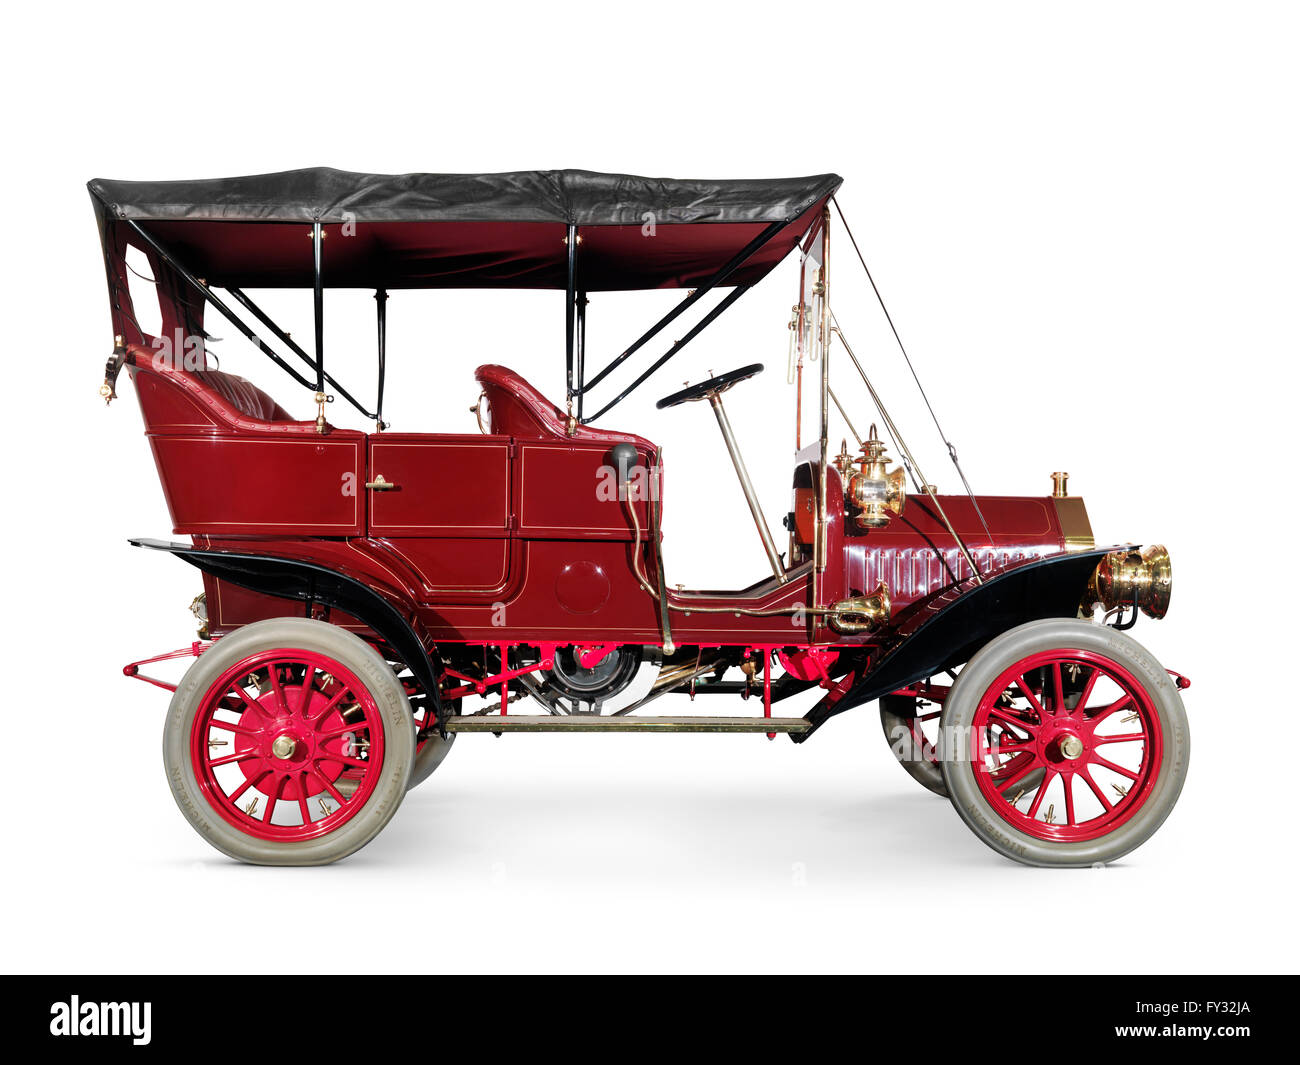 Red 1908 McLaughlin-Buick Model F antique vintage retro car, side view Stock Photo